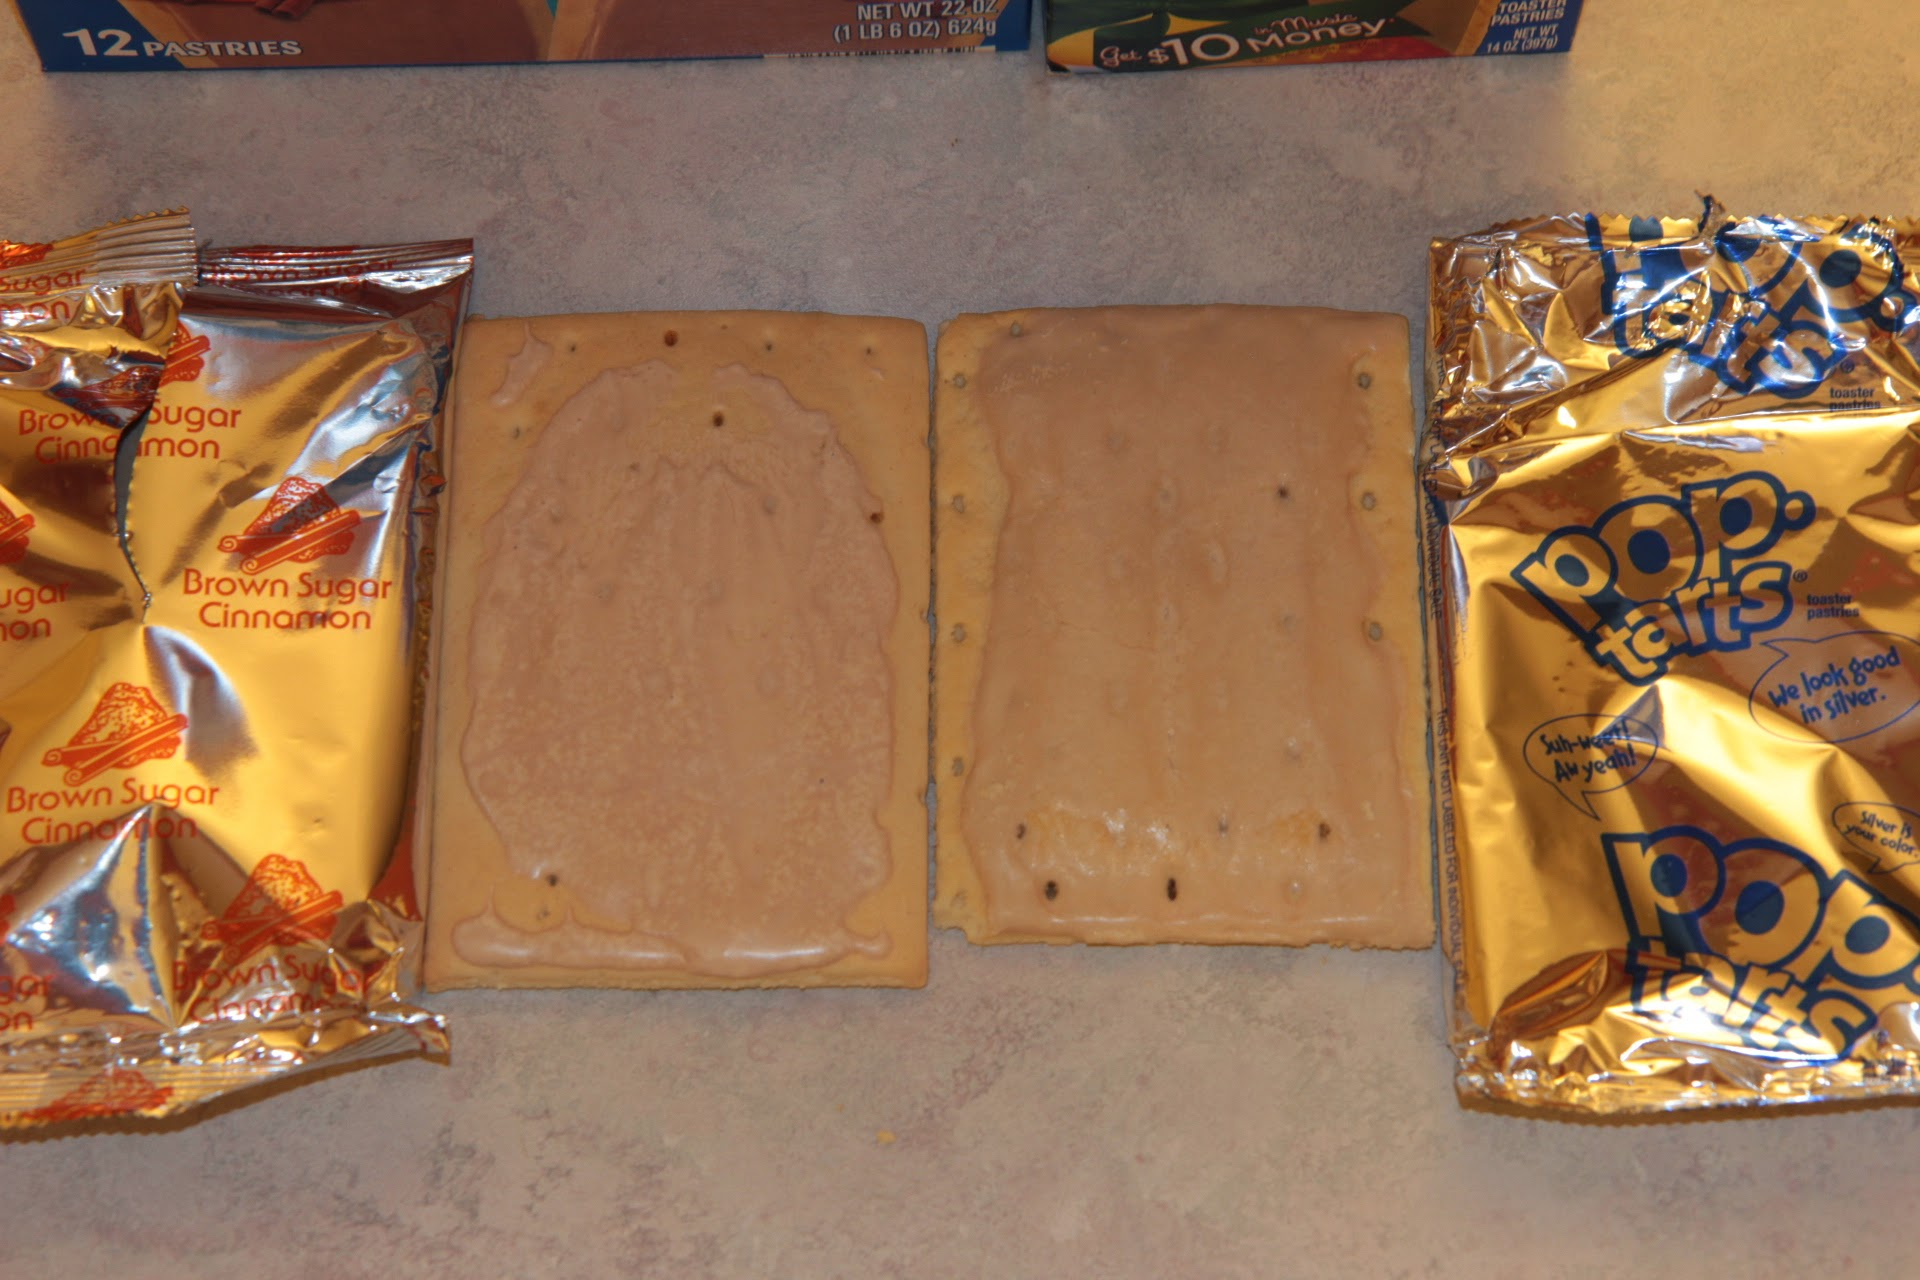 Aldi Millville Toaster Tarts vs. Kellogg's Pop Tarts Side By Side